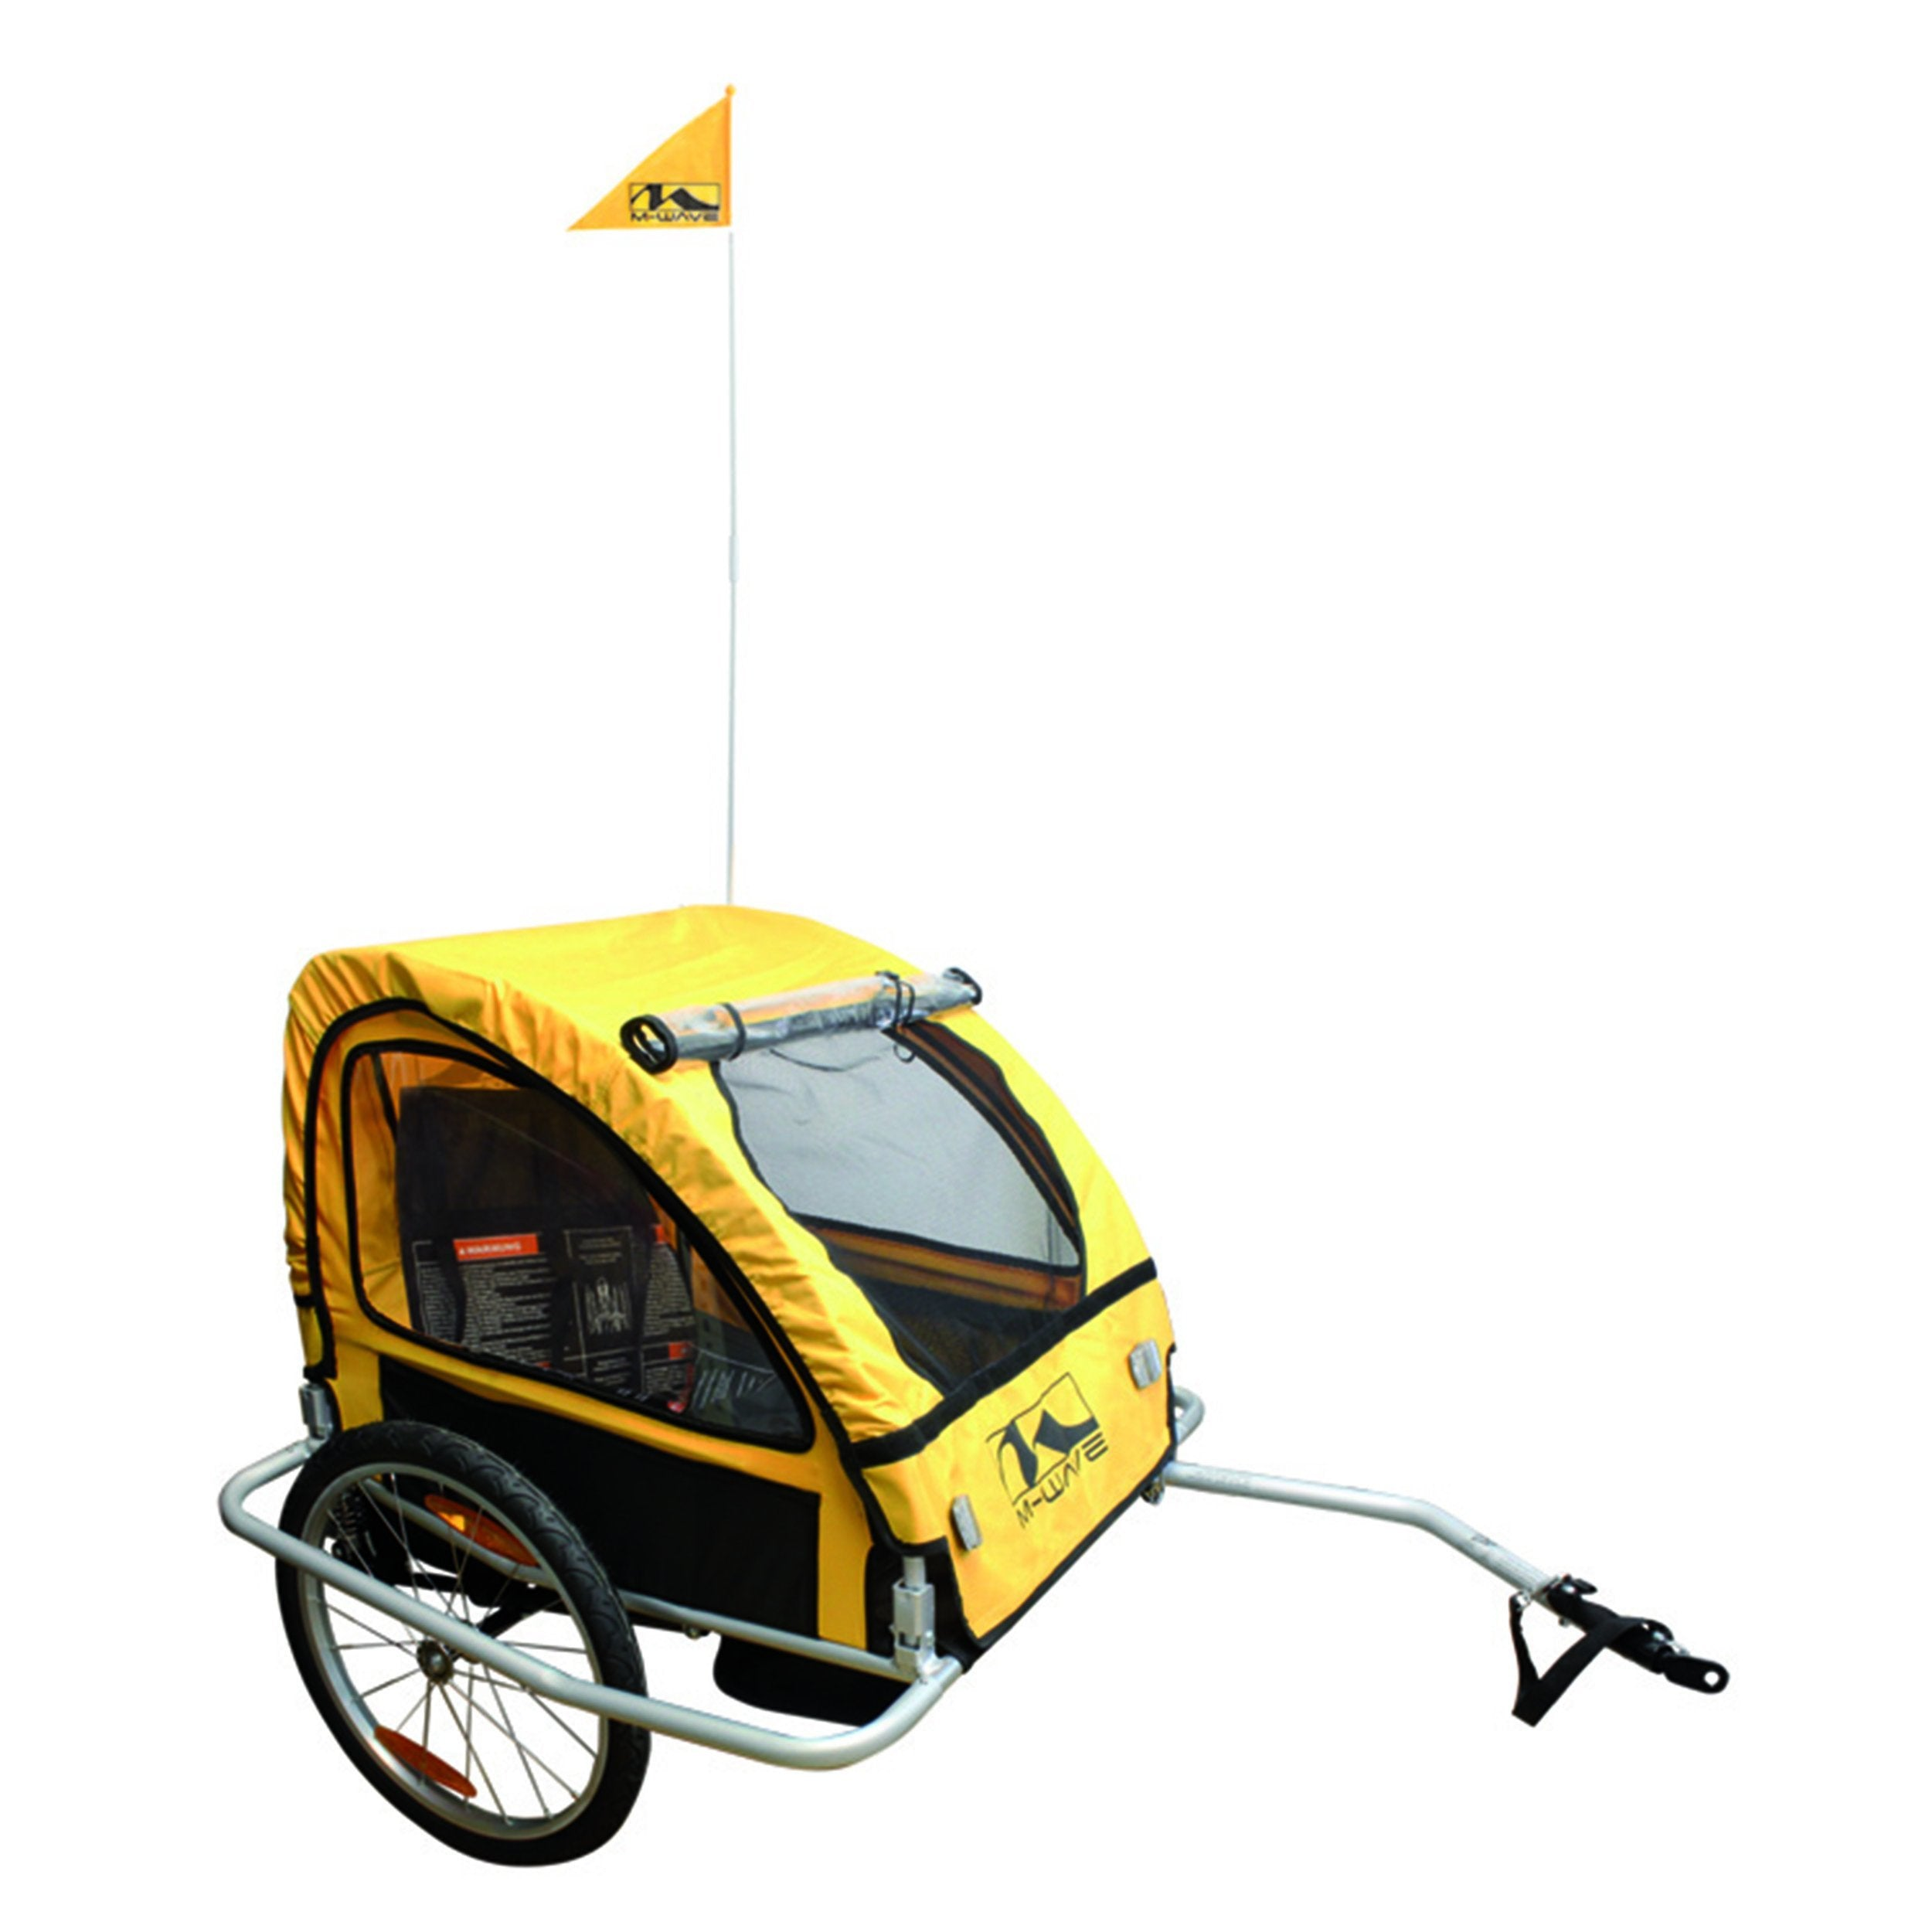 M-Wave Alloy Children's Trailer with Suspension - Trailer Ridetique.com